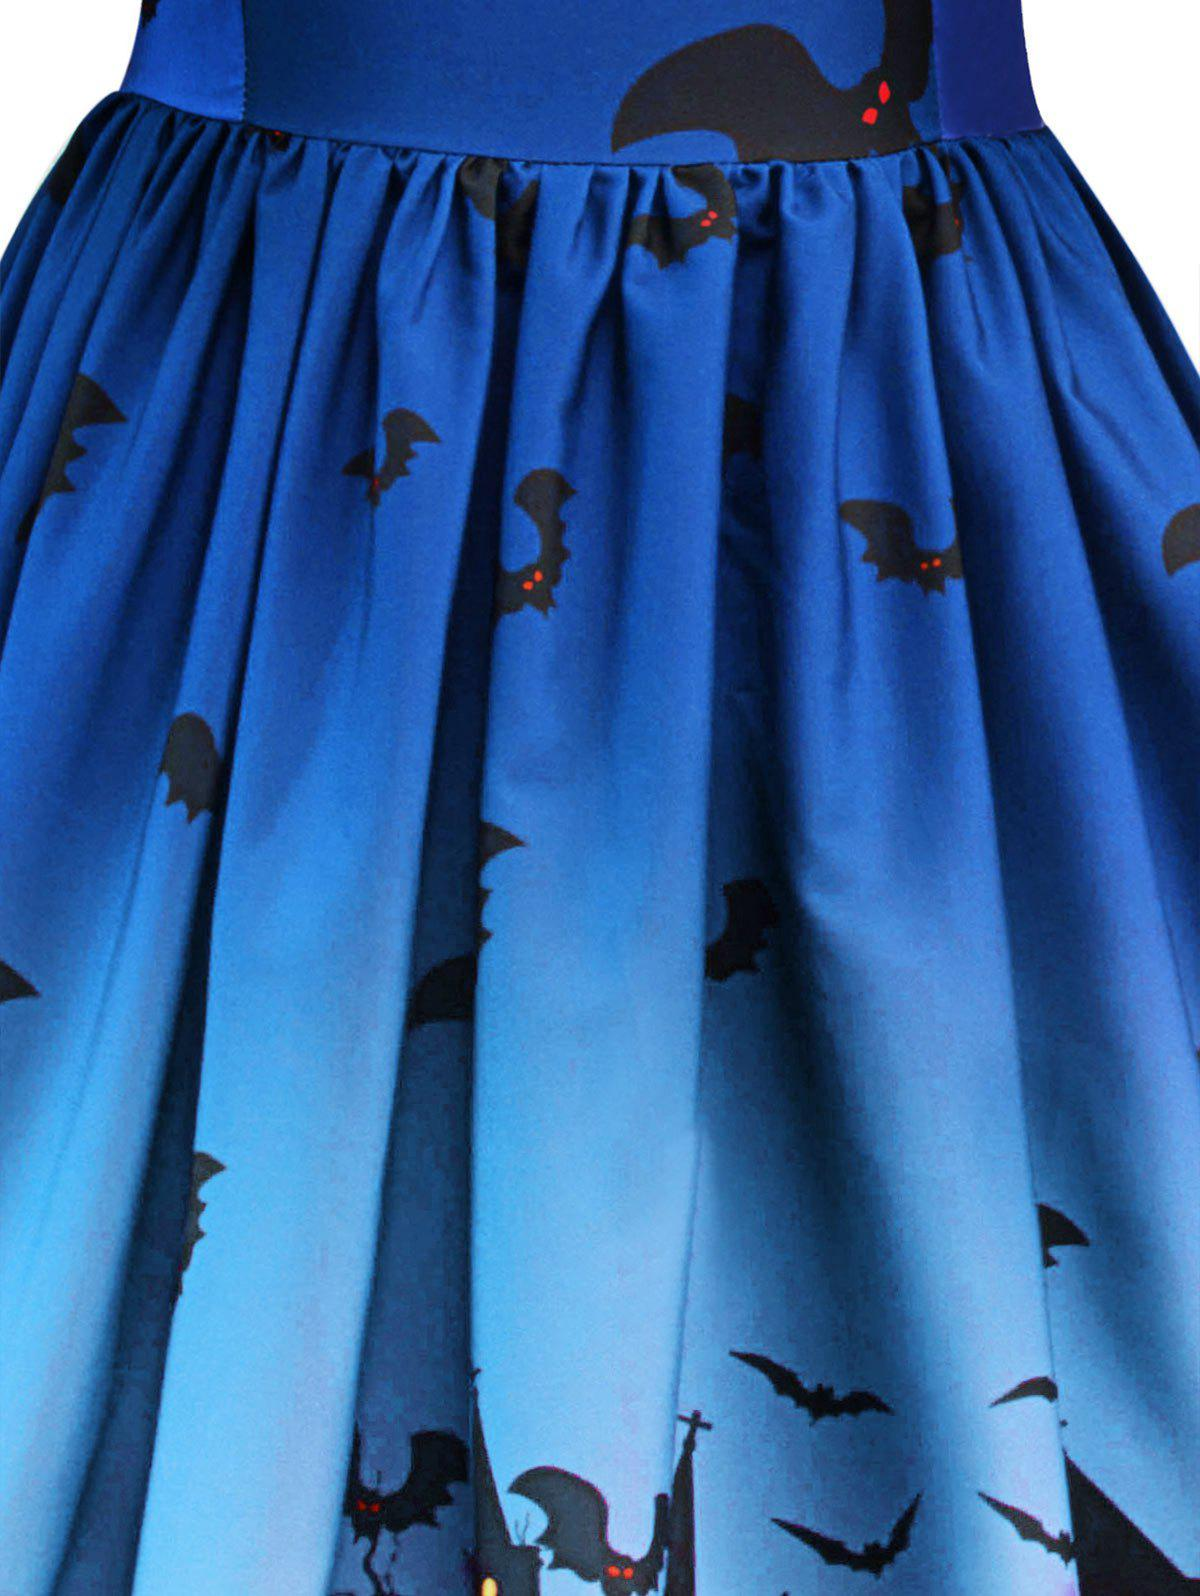 Robe Halloween à Empiècement en Dentelle Vintage - Bleu Royal L